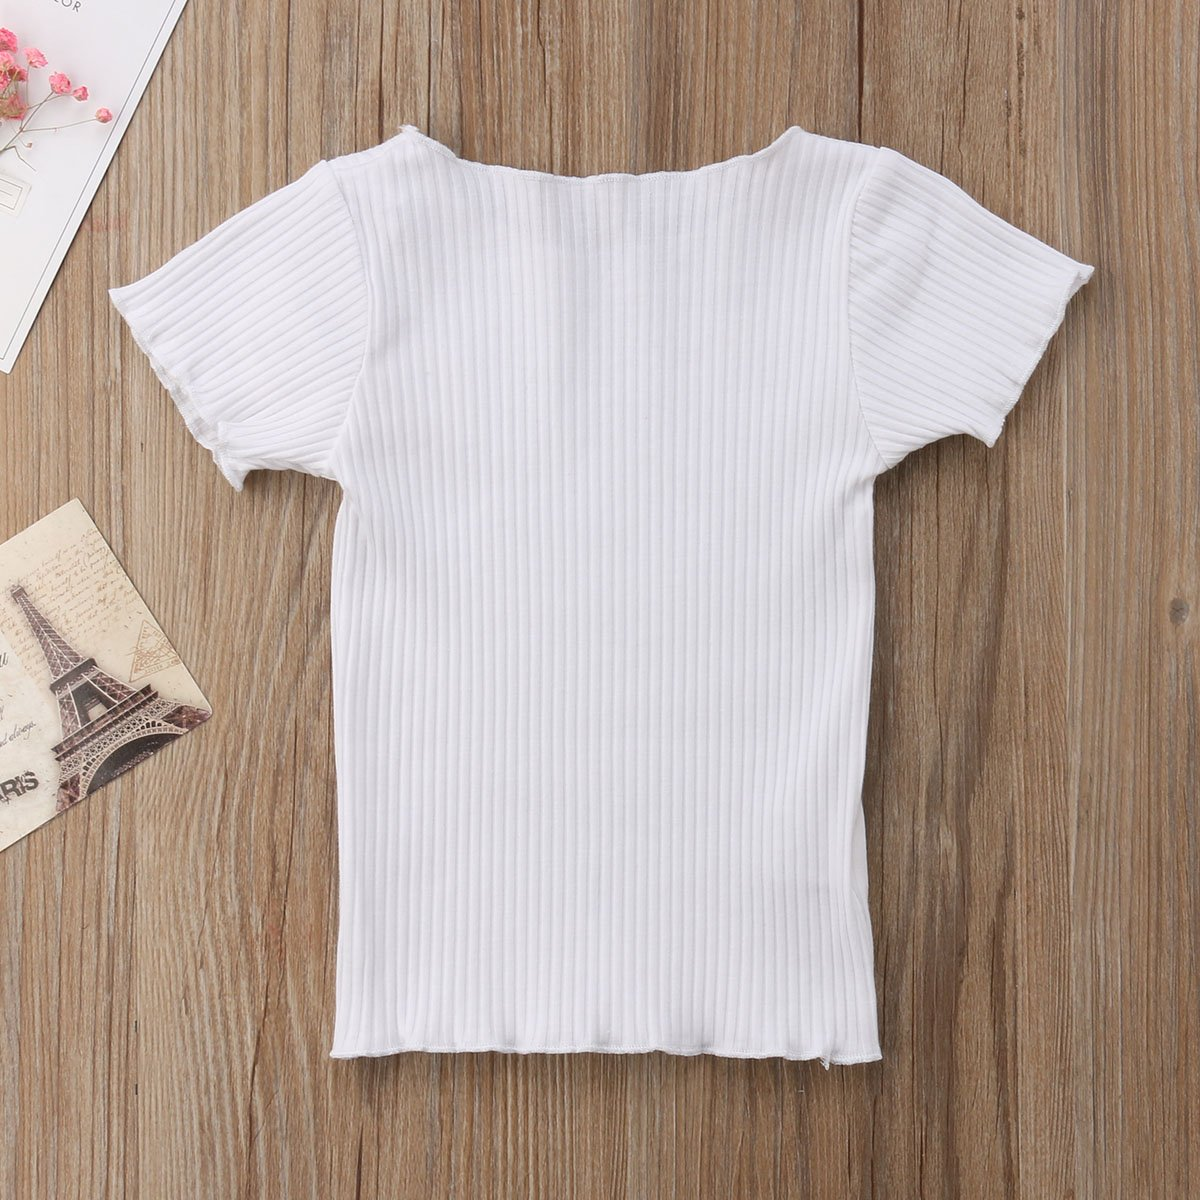 Hopiumy Toddler Baby Girls Short Sleeve Shirts Striped Ruffle Tee Cotton Blouse